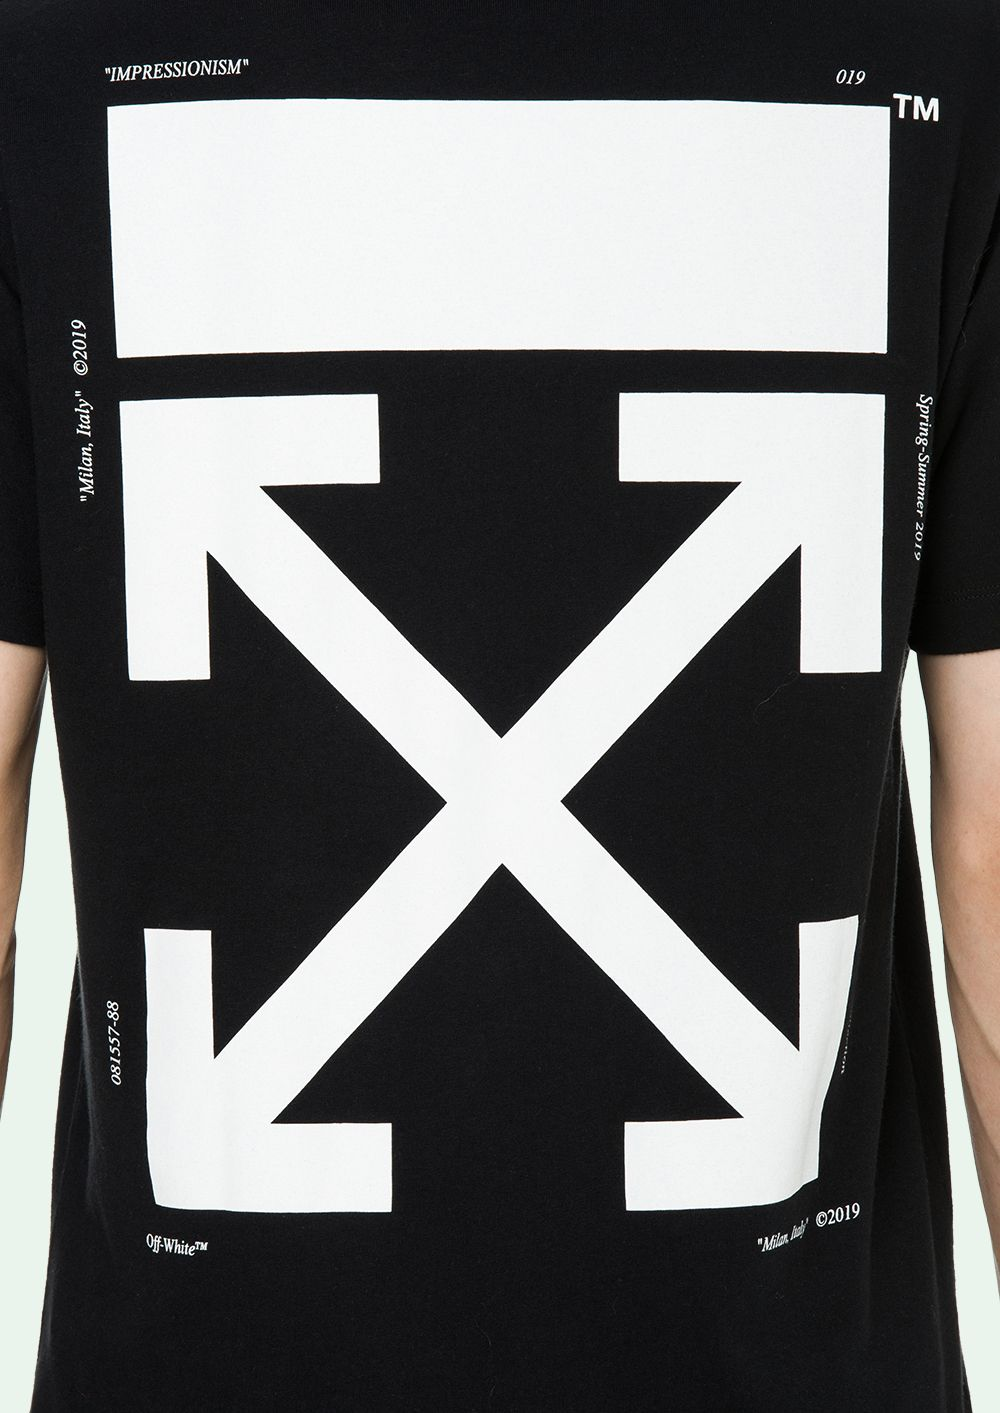 Off White T Shirt S S Offwhite 이미지 포함